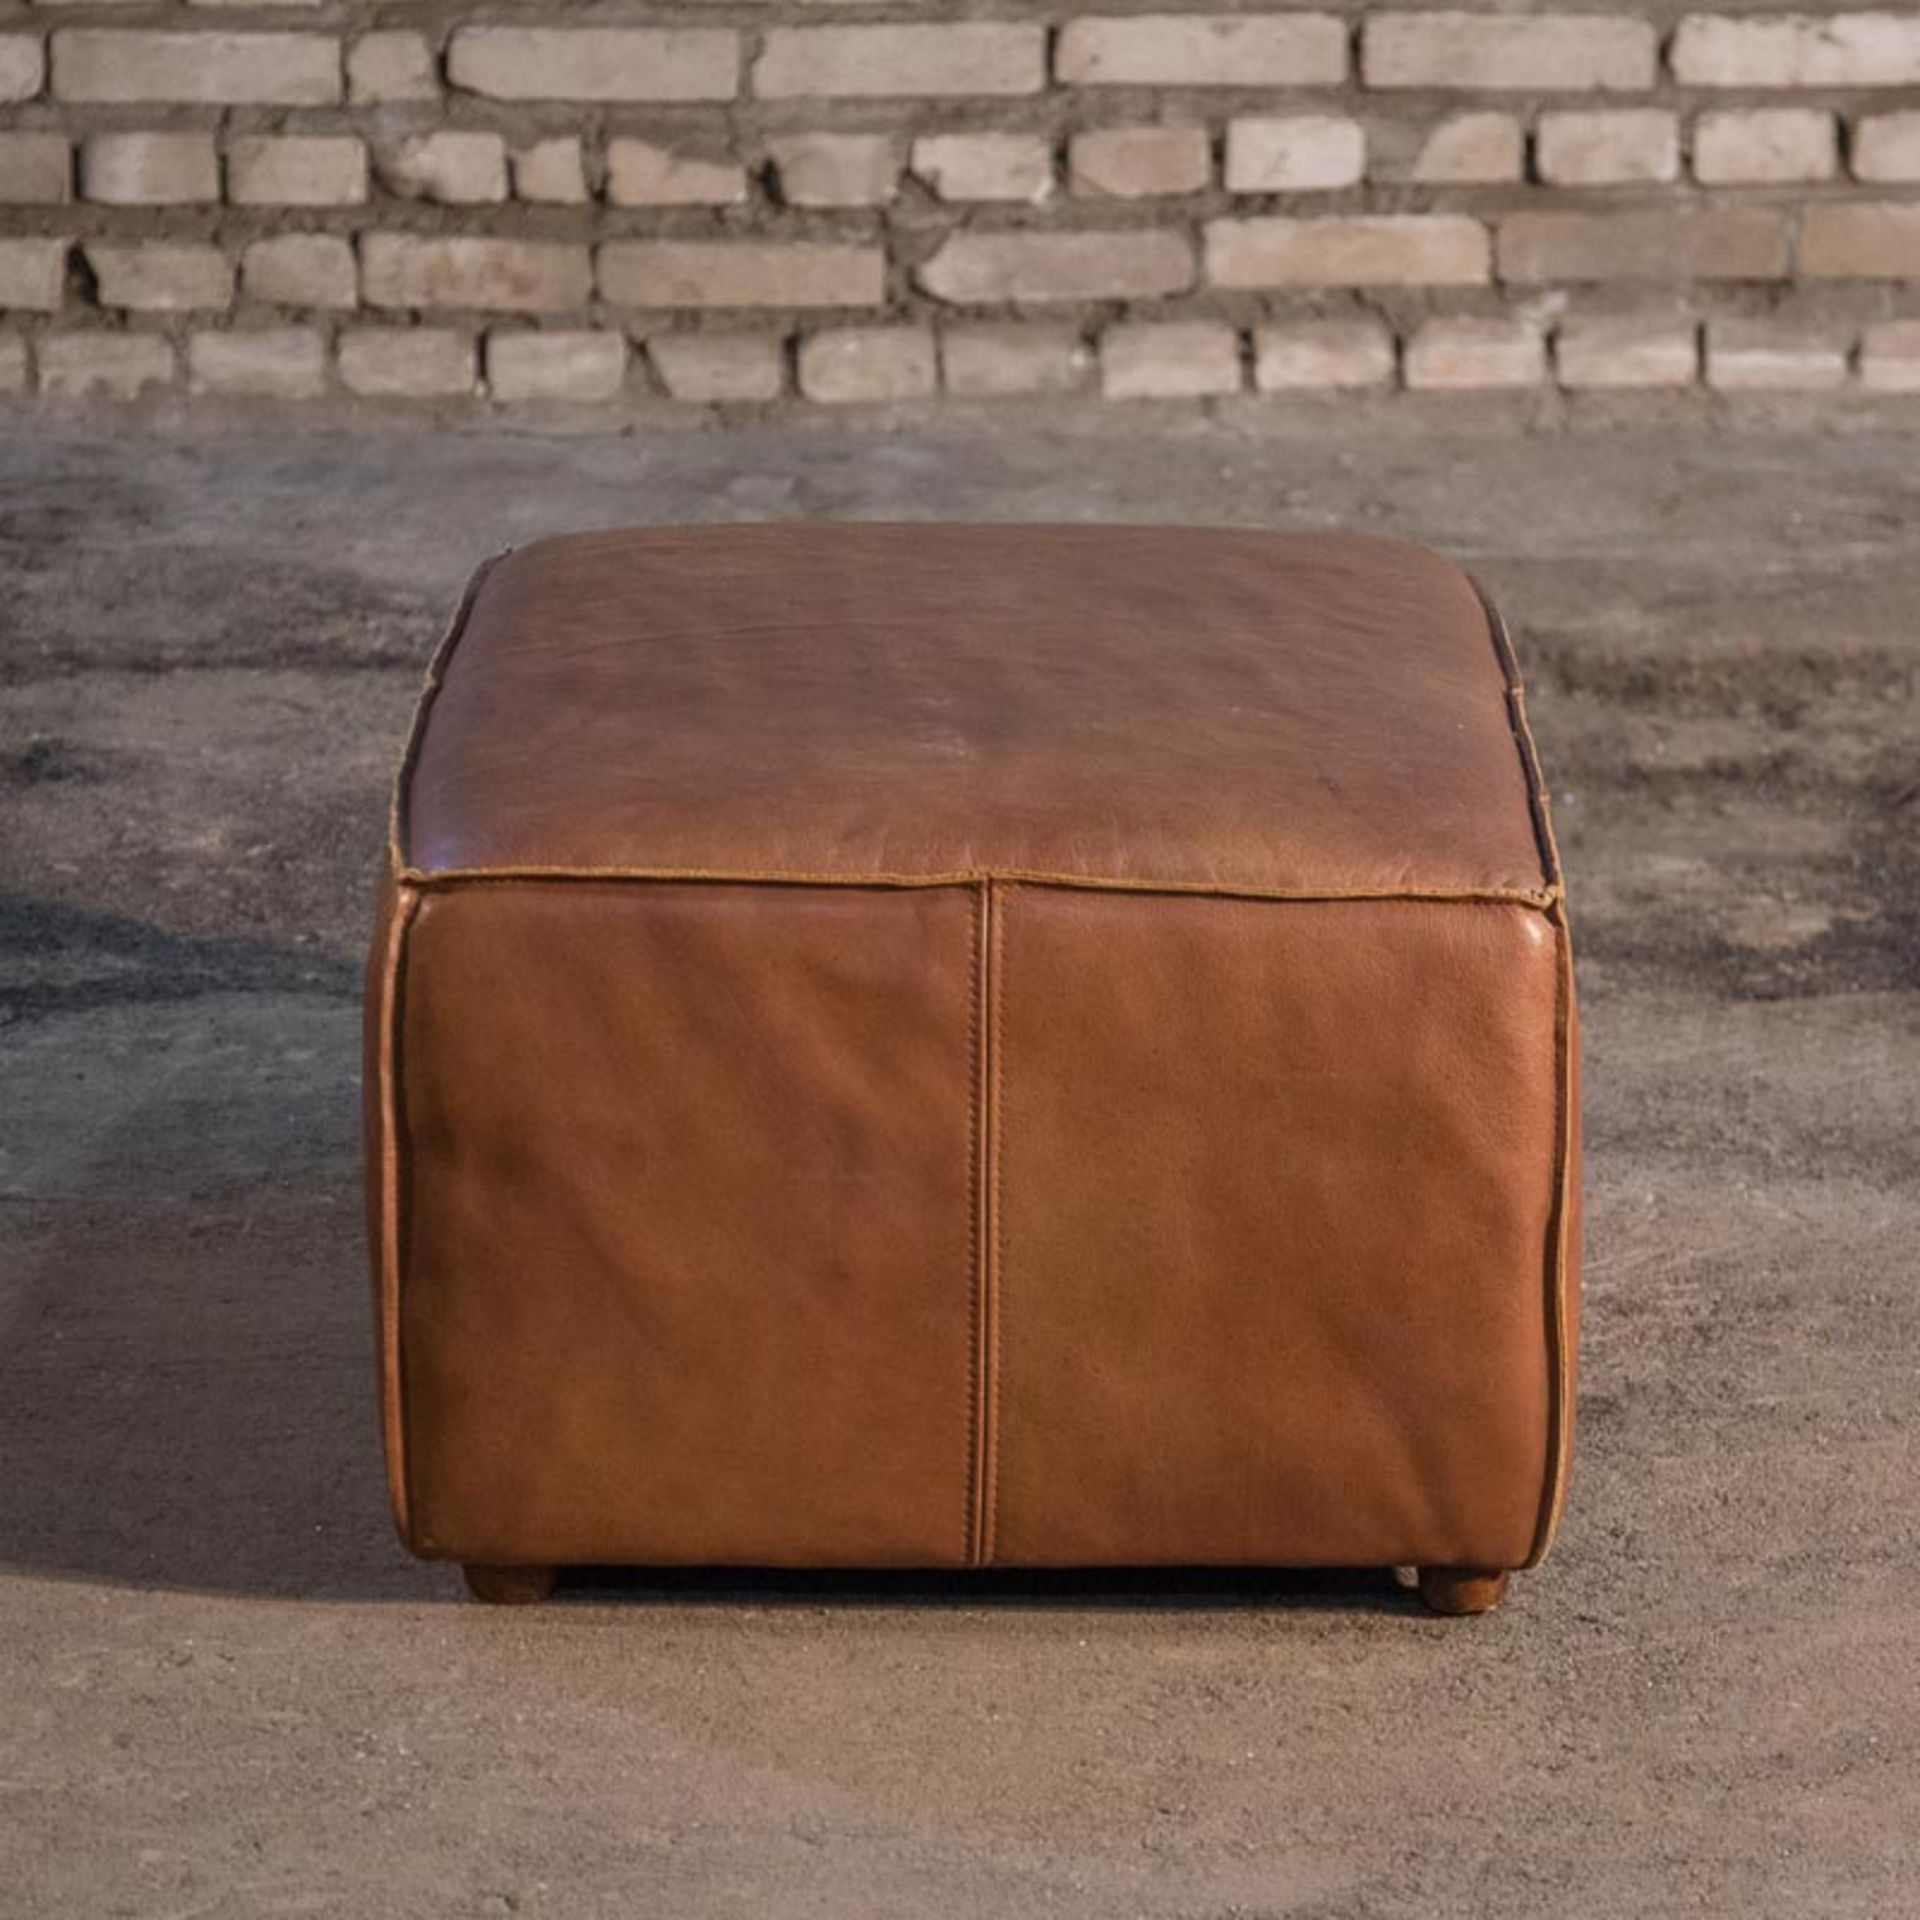 Lot 50 - Slabby Footstool Savage Leather Slabby Is Designed For Ultimate Comfort. The Worn, Slightly